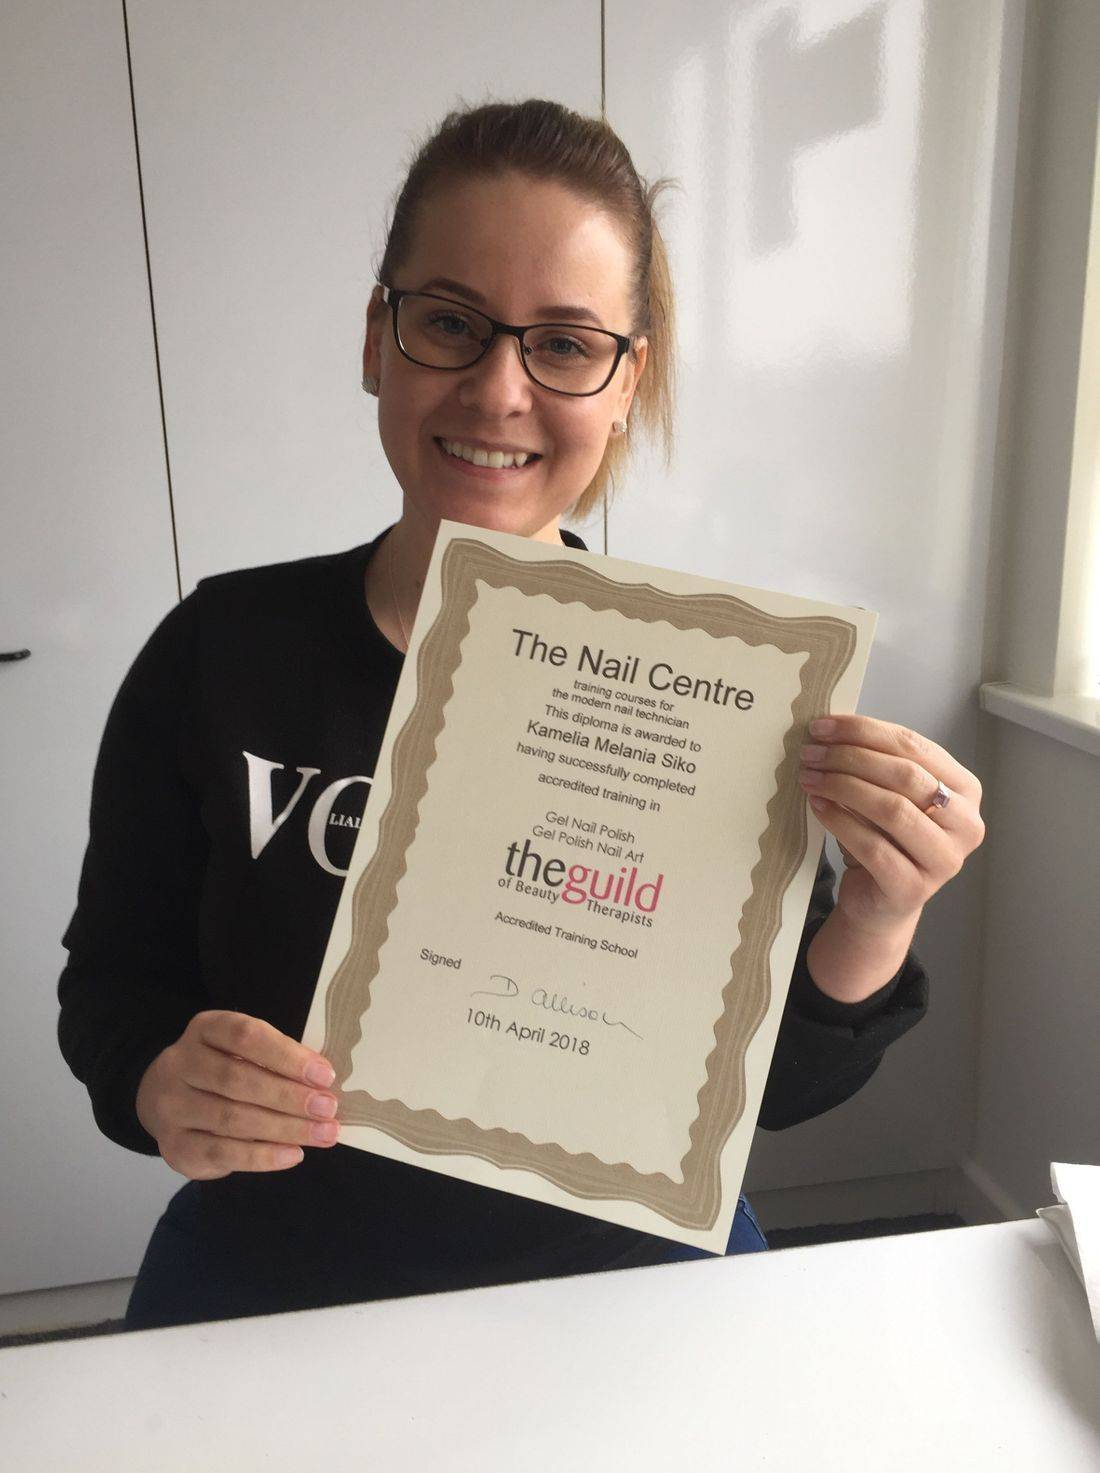 A happy qualified nail technician